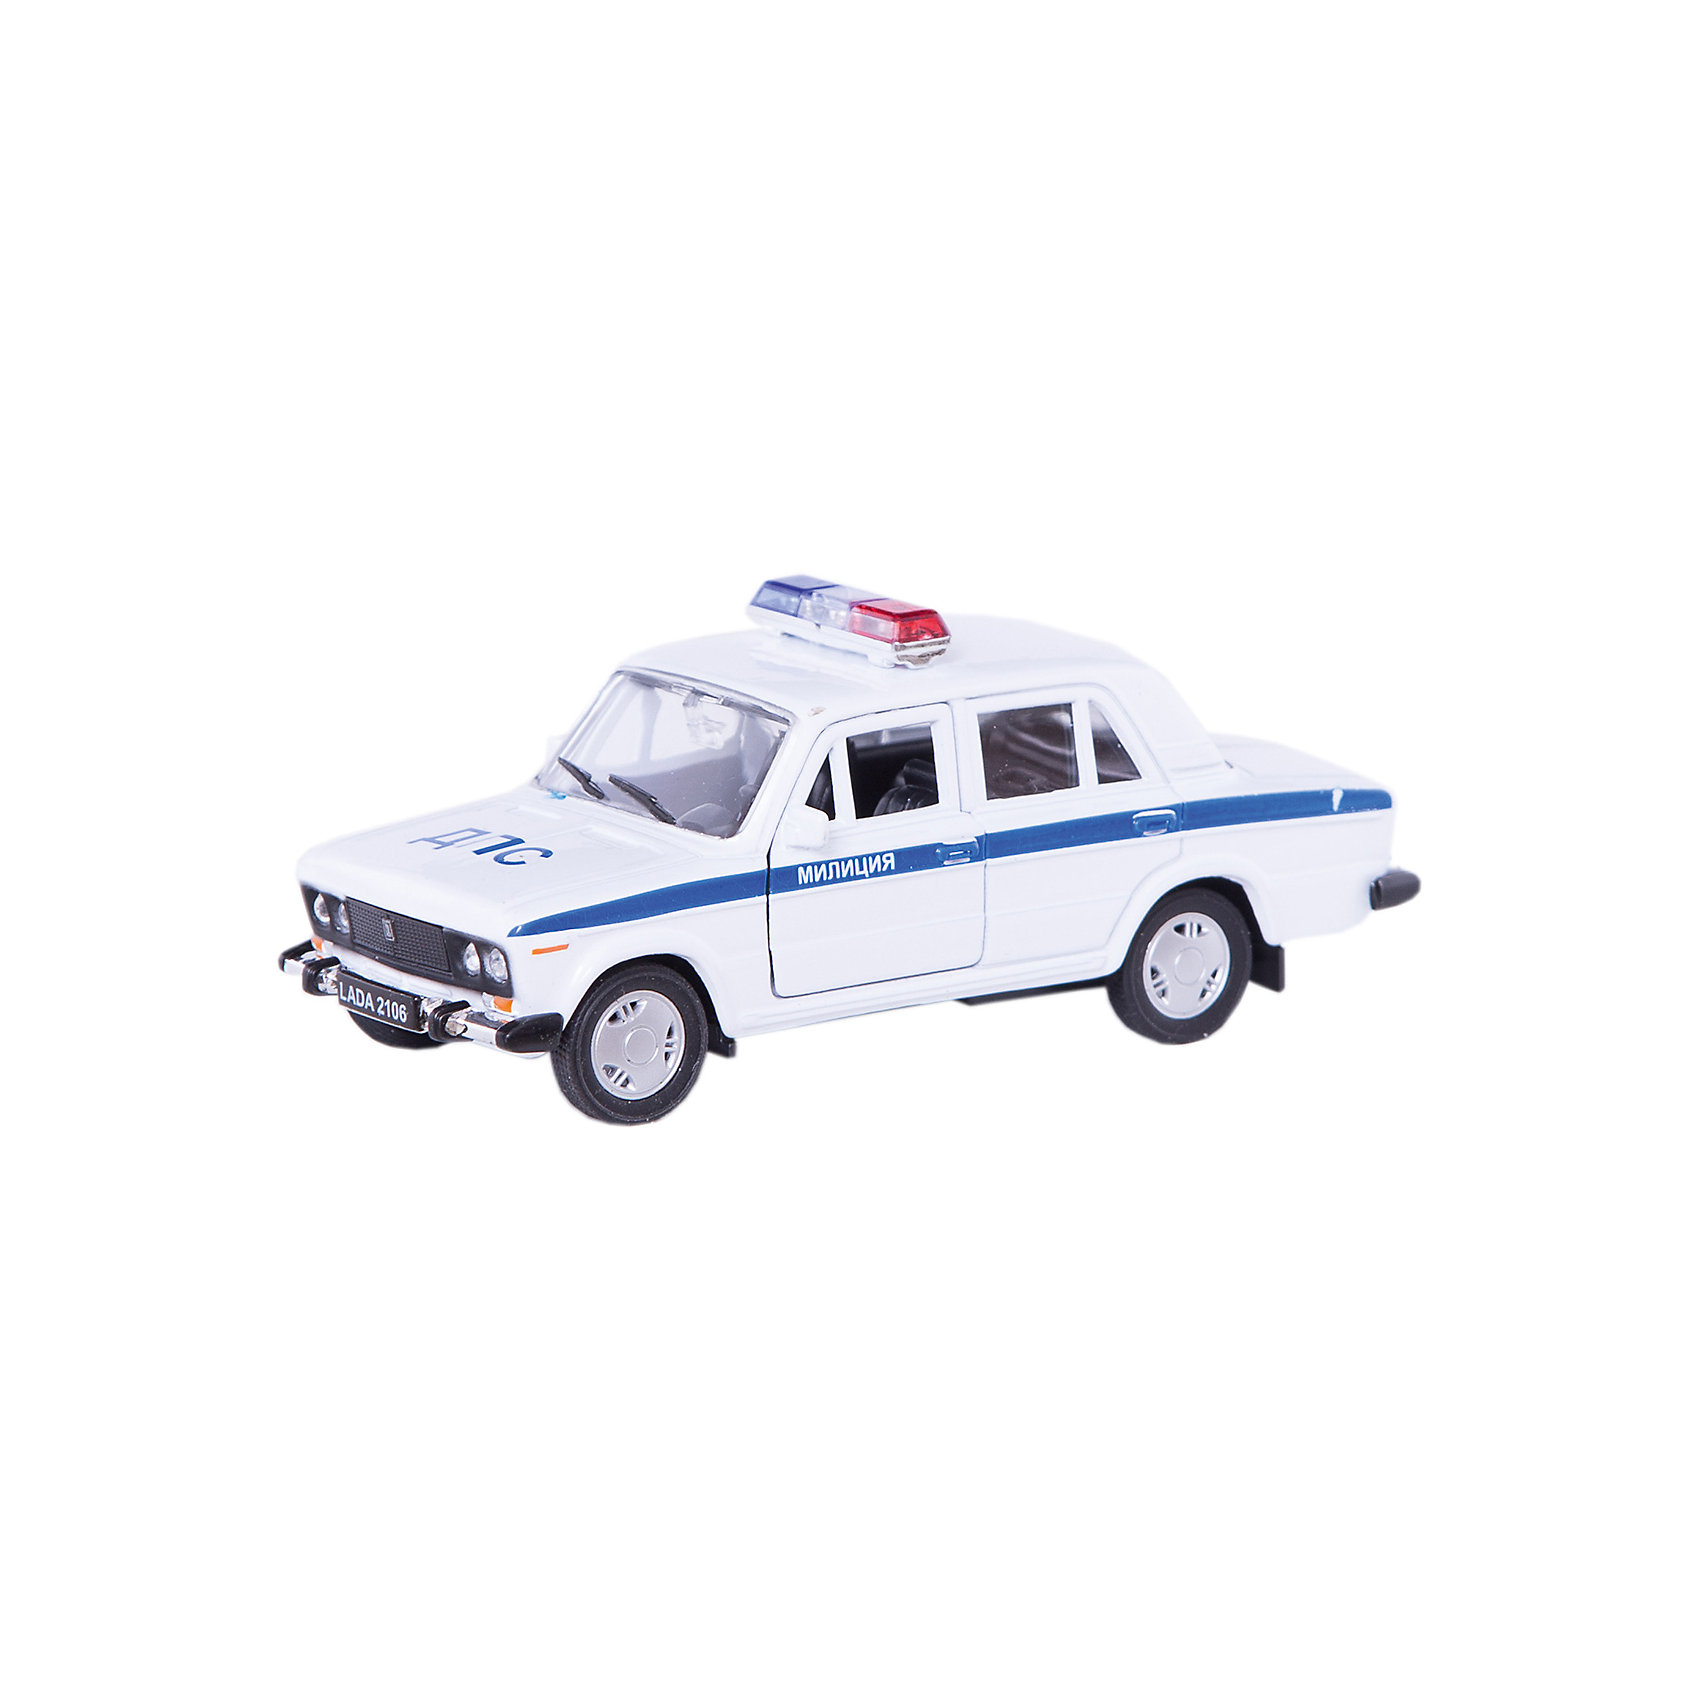 Welly ������ ������ 1:34-39 LADA 2106 ������� ���